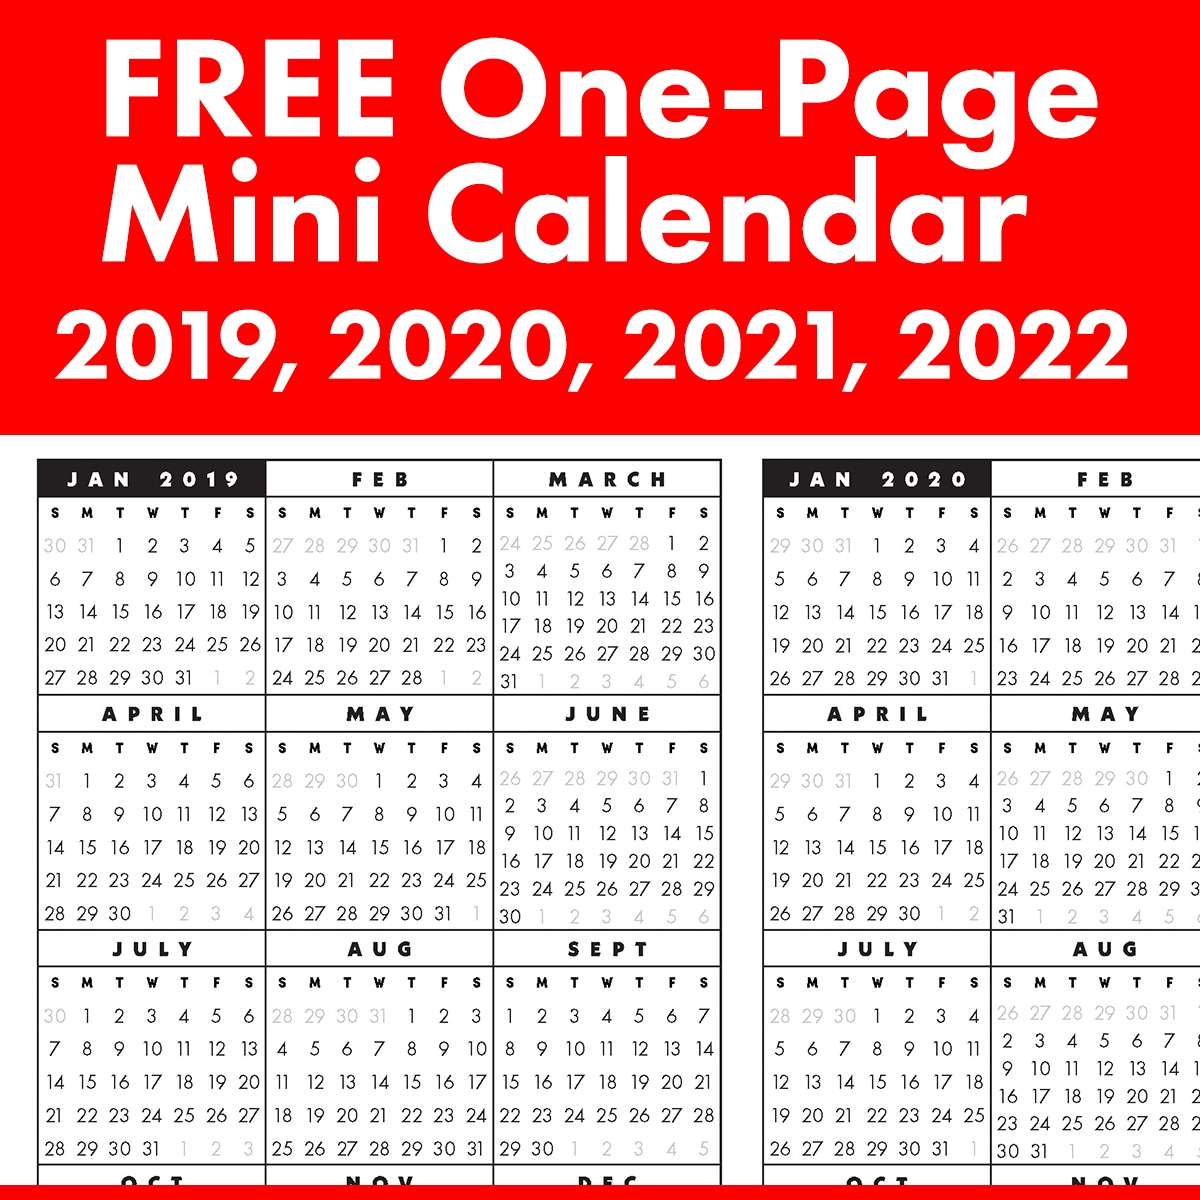 Free Full-Year, Single-Page 2019, 2020, 2021, 2022 At A Glance regarding Calander Single Page Printable 2019 2020